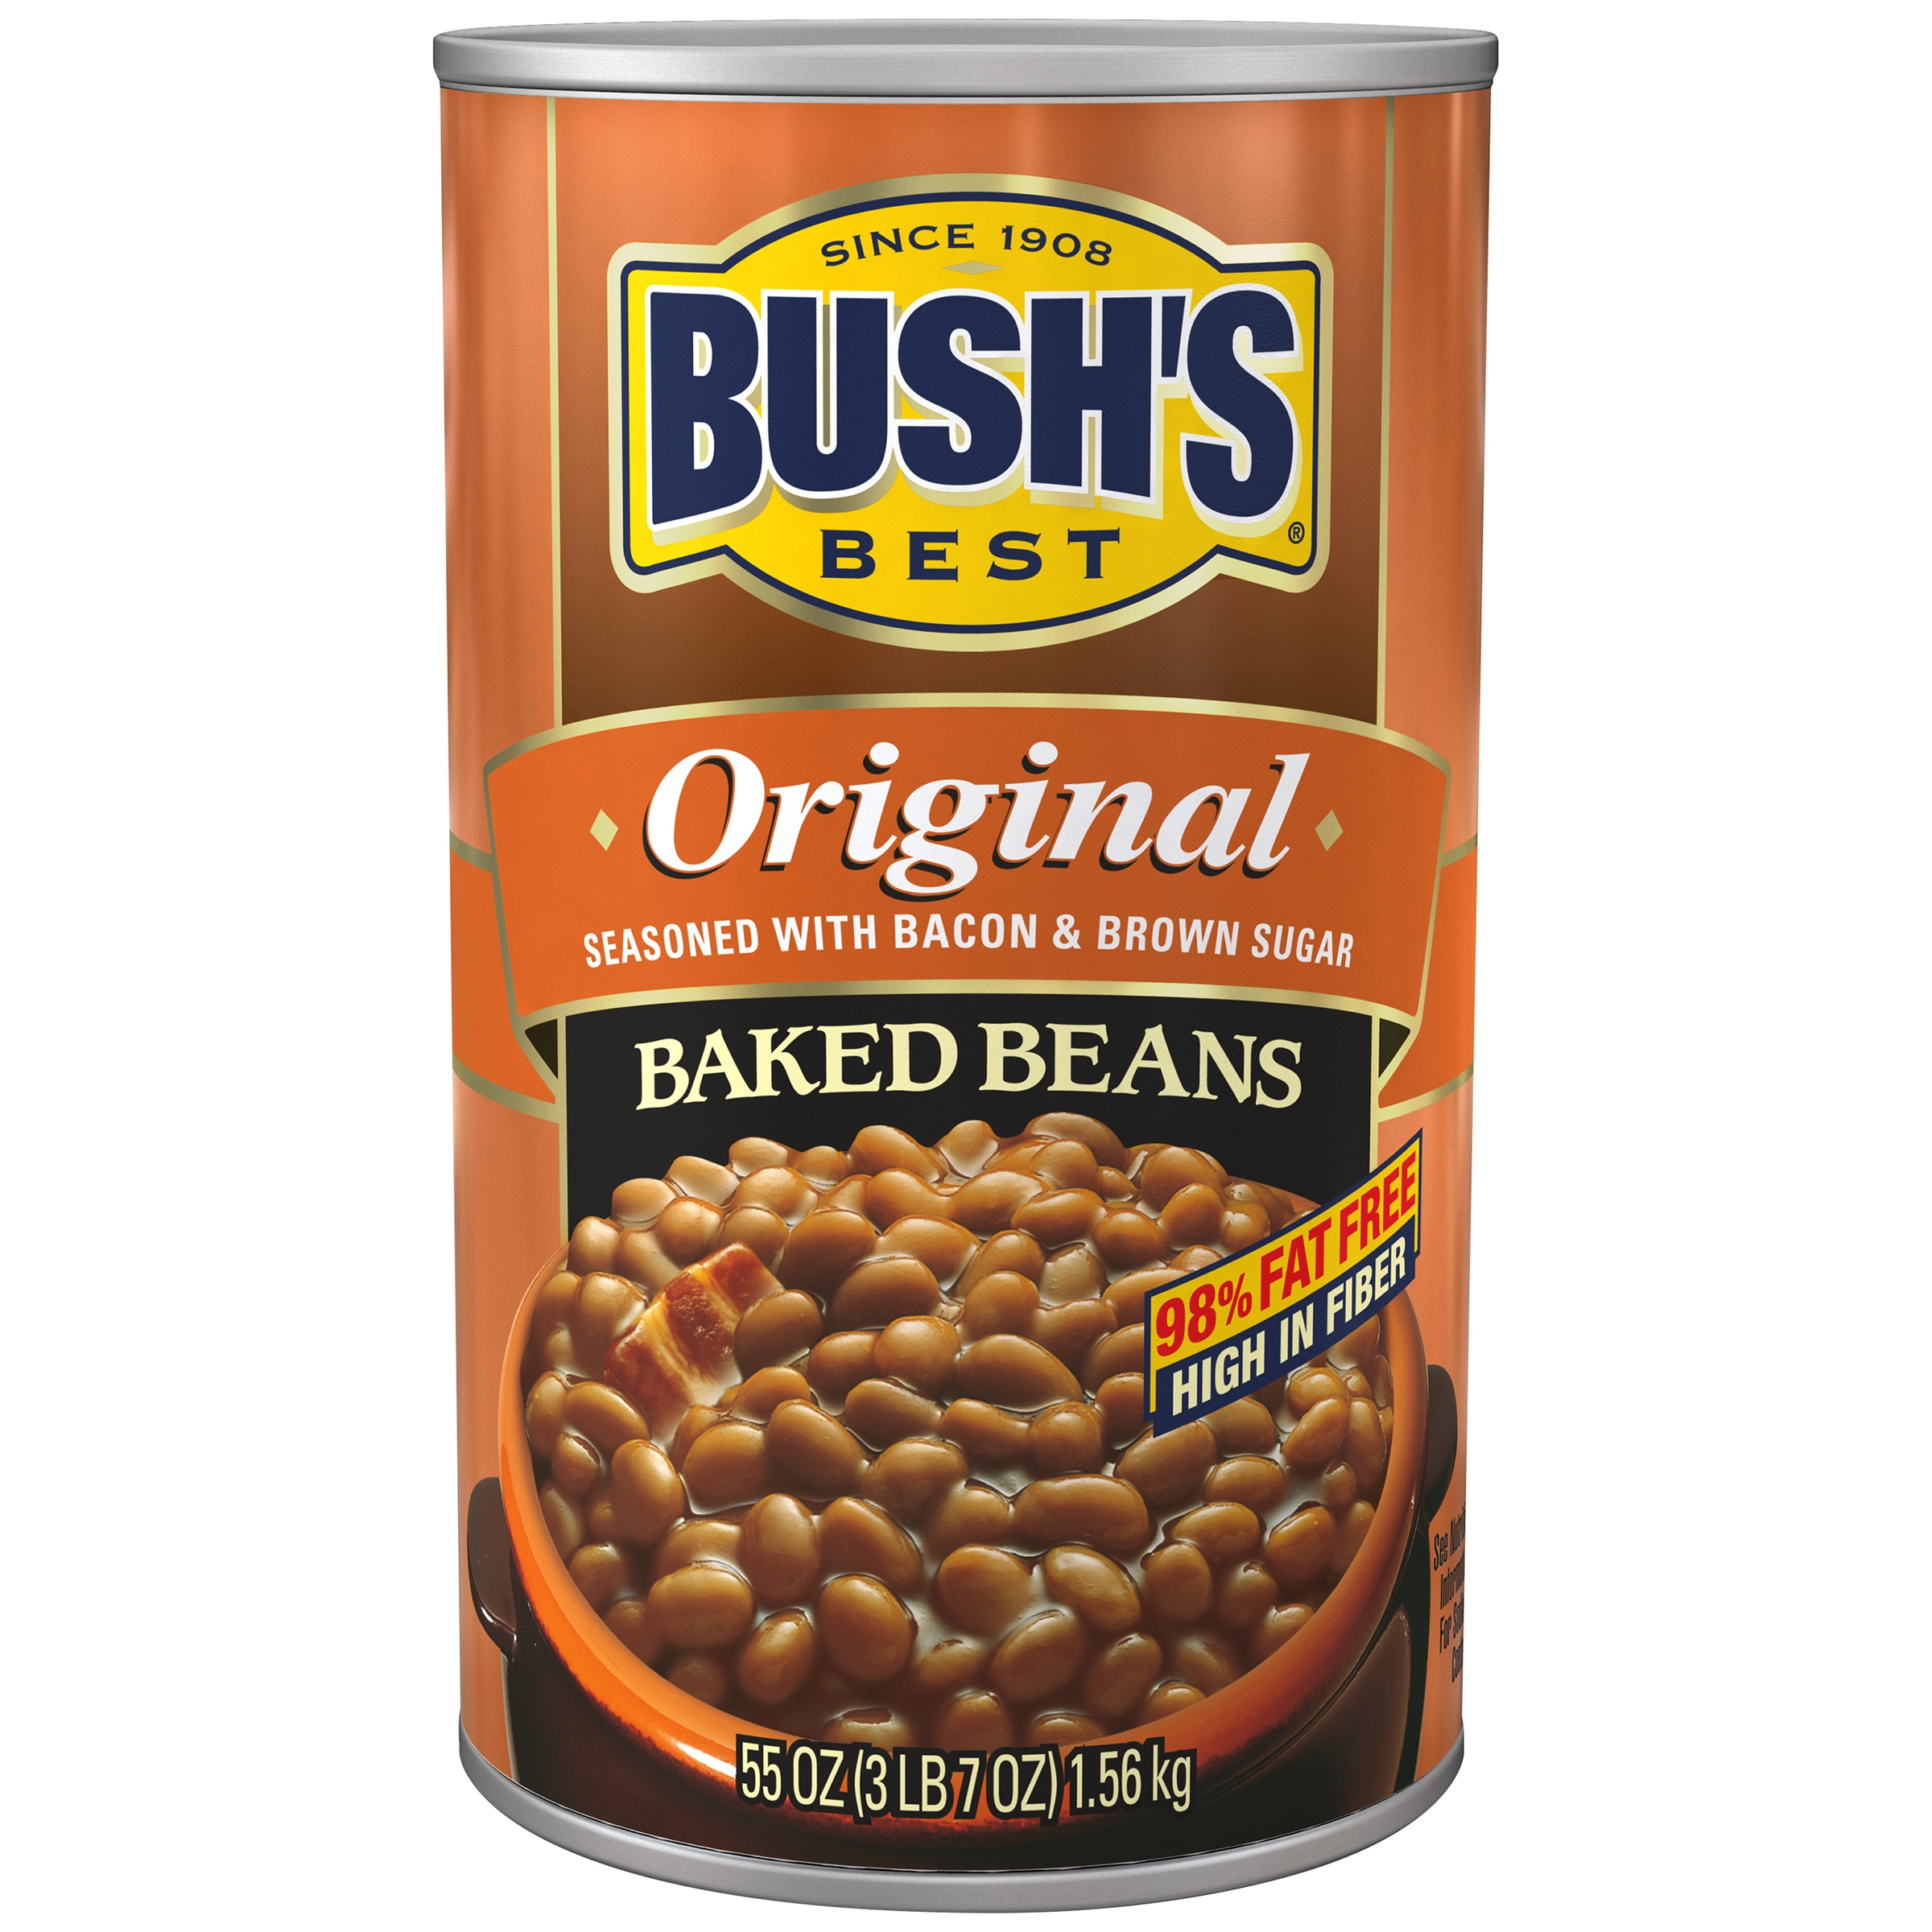 Bushs Best Original Seasoned Baked Beans With Bacon And Brown Sugar, 55 oz by Bush Brothers & Co.